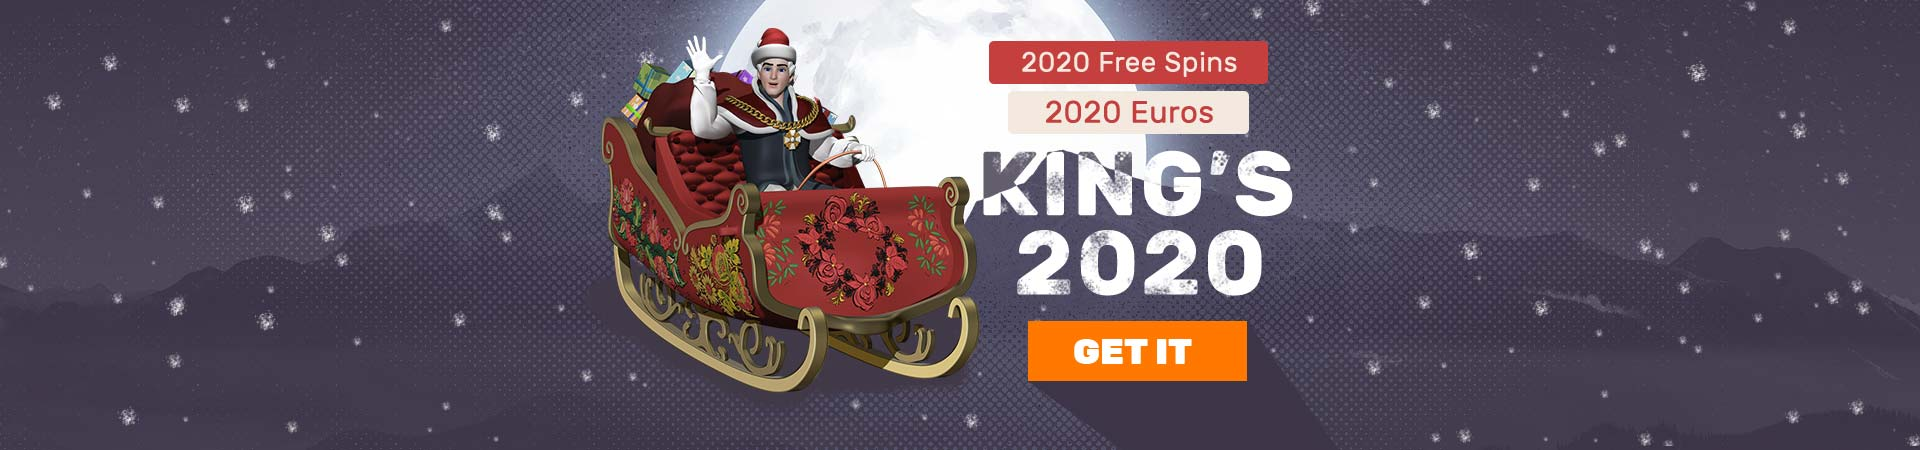 ny 2019 11 King Billy English King's 2020 1920x450